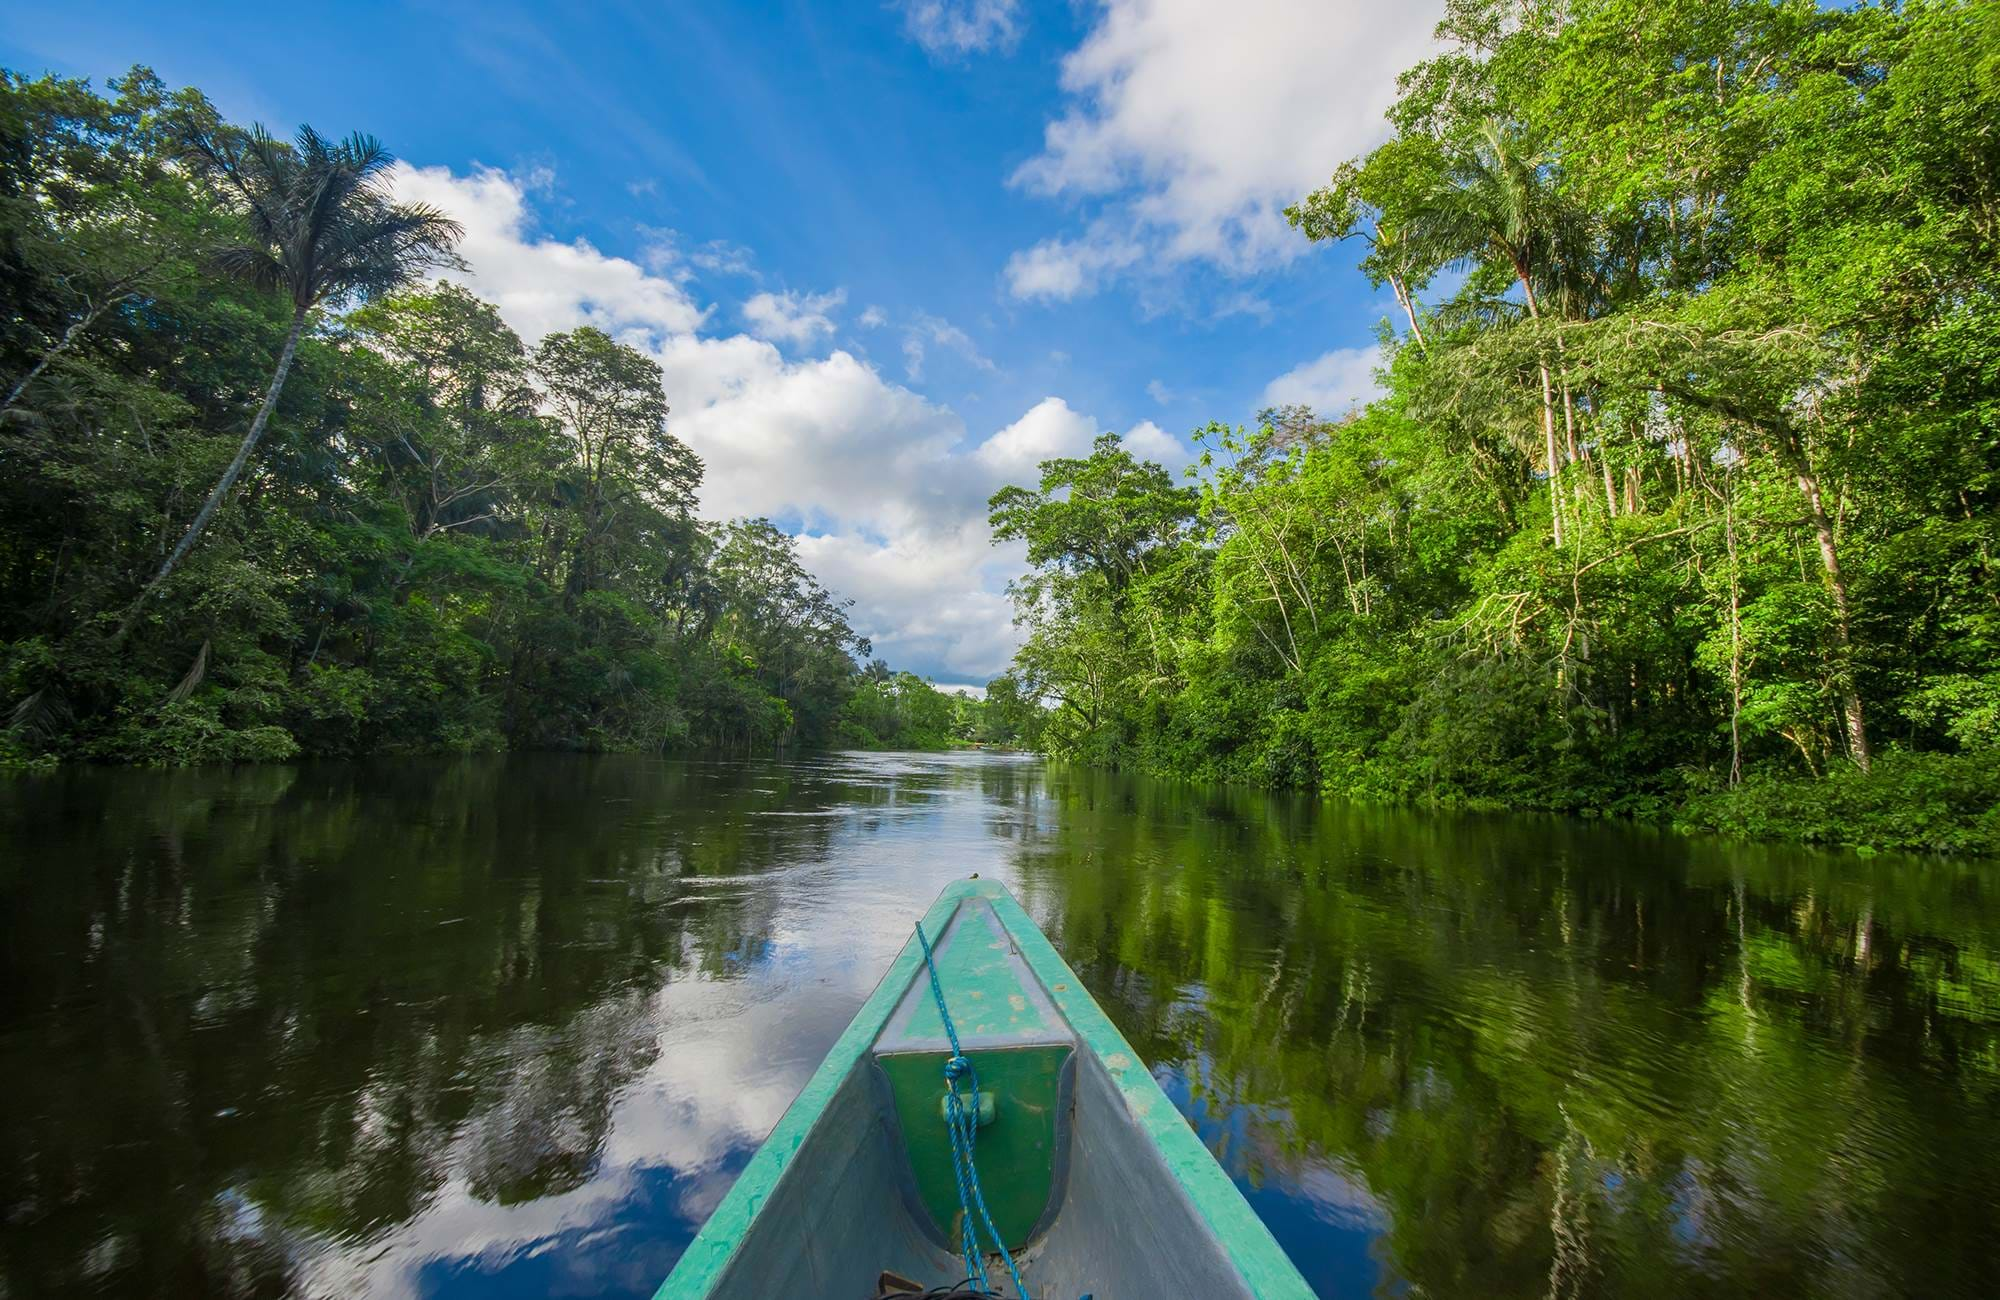 amazon-rainforest-ecuador-cuyabeno-national-park-boat-cover